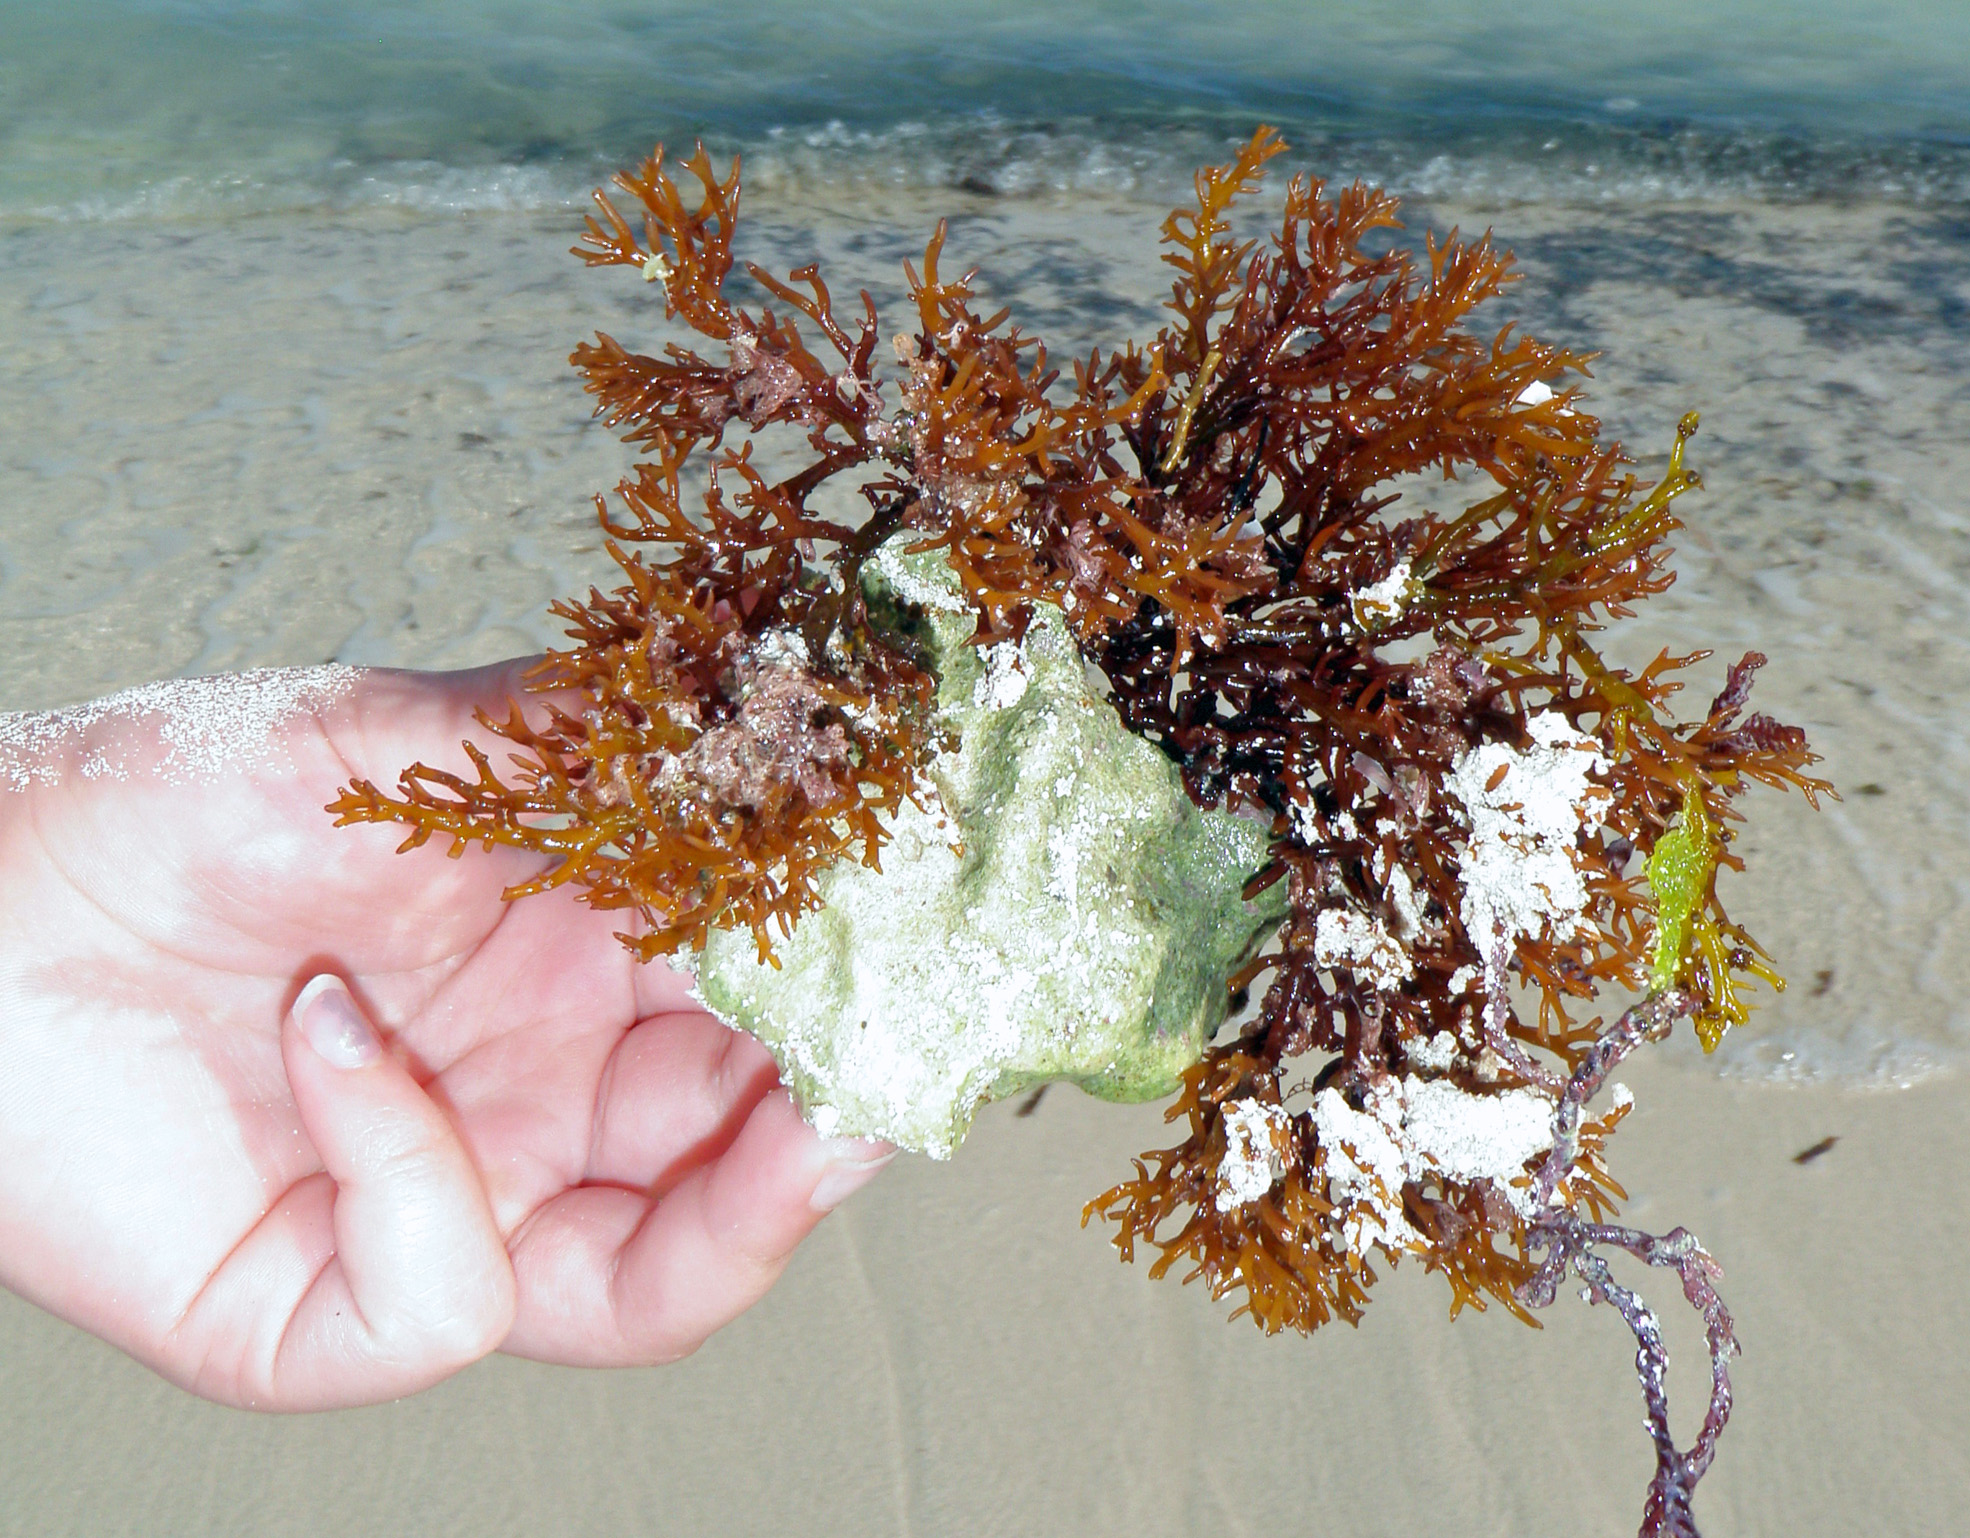 2010 Eco-Blogging Garden Adventure in Mexico – You Are Killing the Coral – STOP USING CHEMICAL FERTILIZERS!